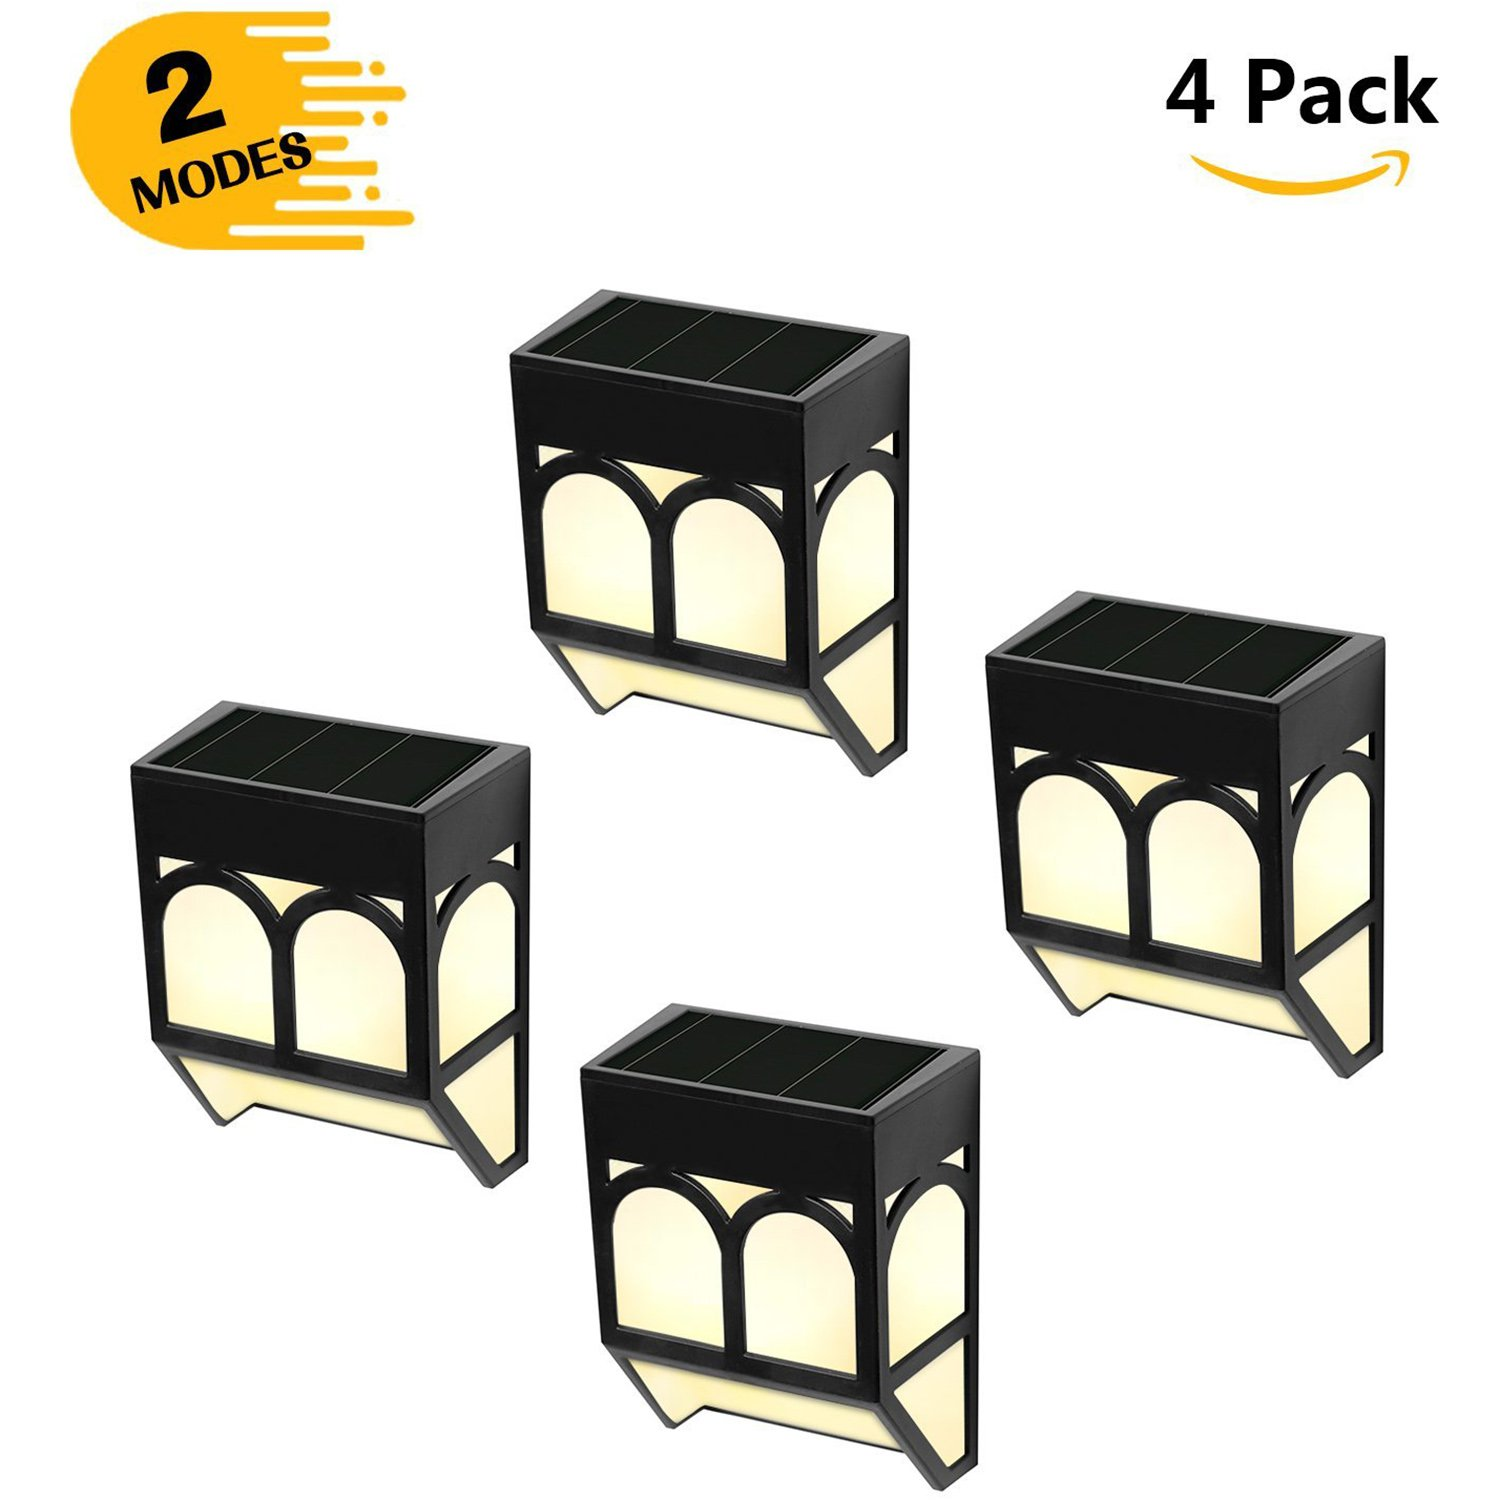 Greluna Solar LED Outdoor Lights - Wireless Waterproof Security Lighting for Deck, Fence, Patio, Front Door, Wall, Stair, Landscape, Yard and Driveway Path - Warm/Color Changing - 4 Pack